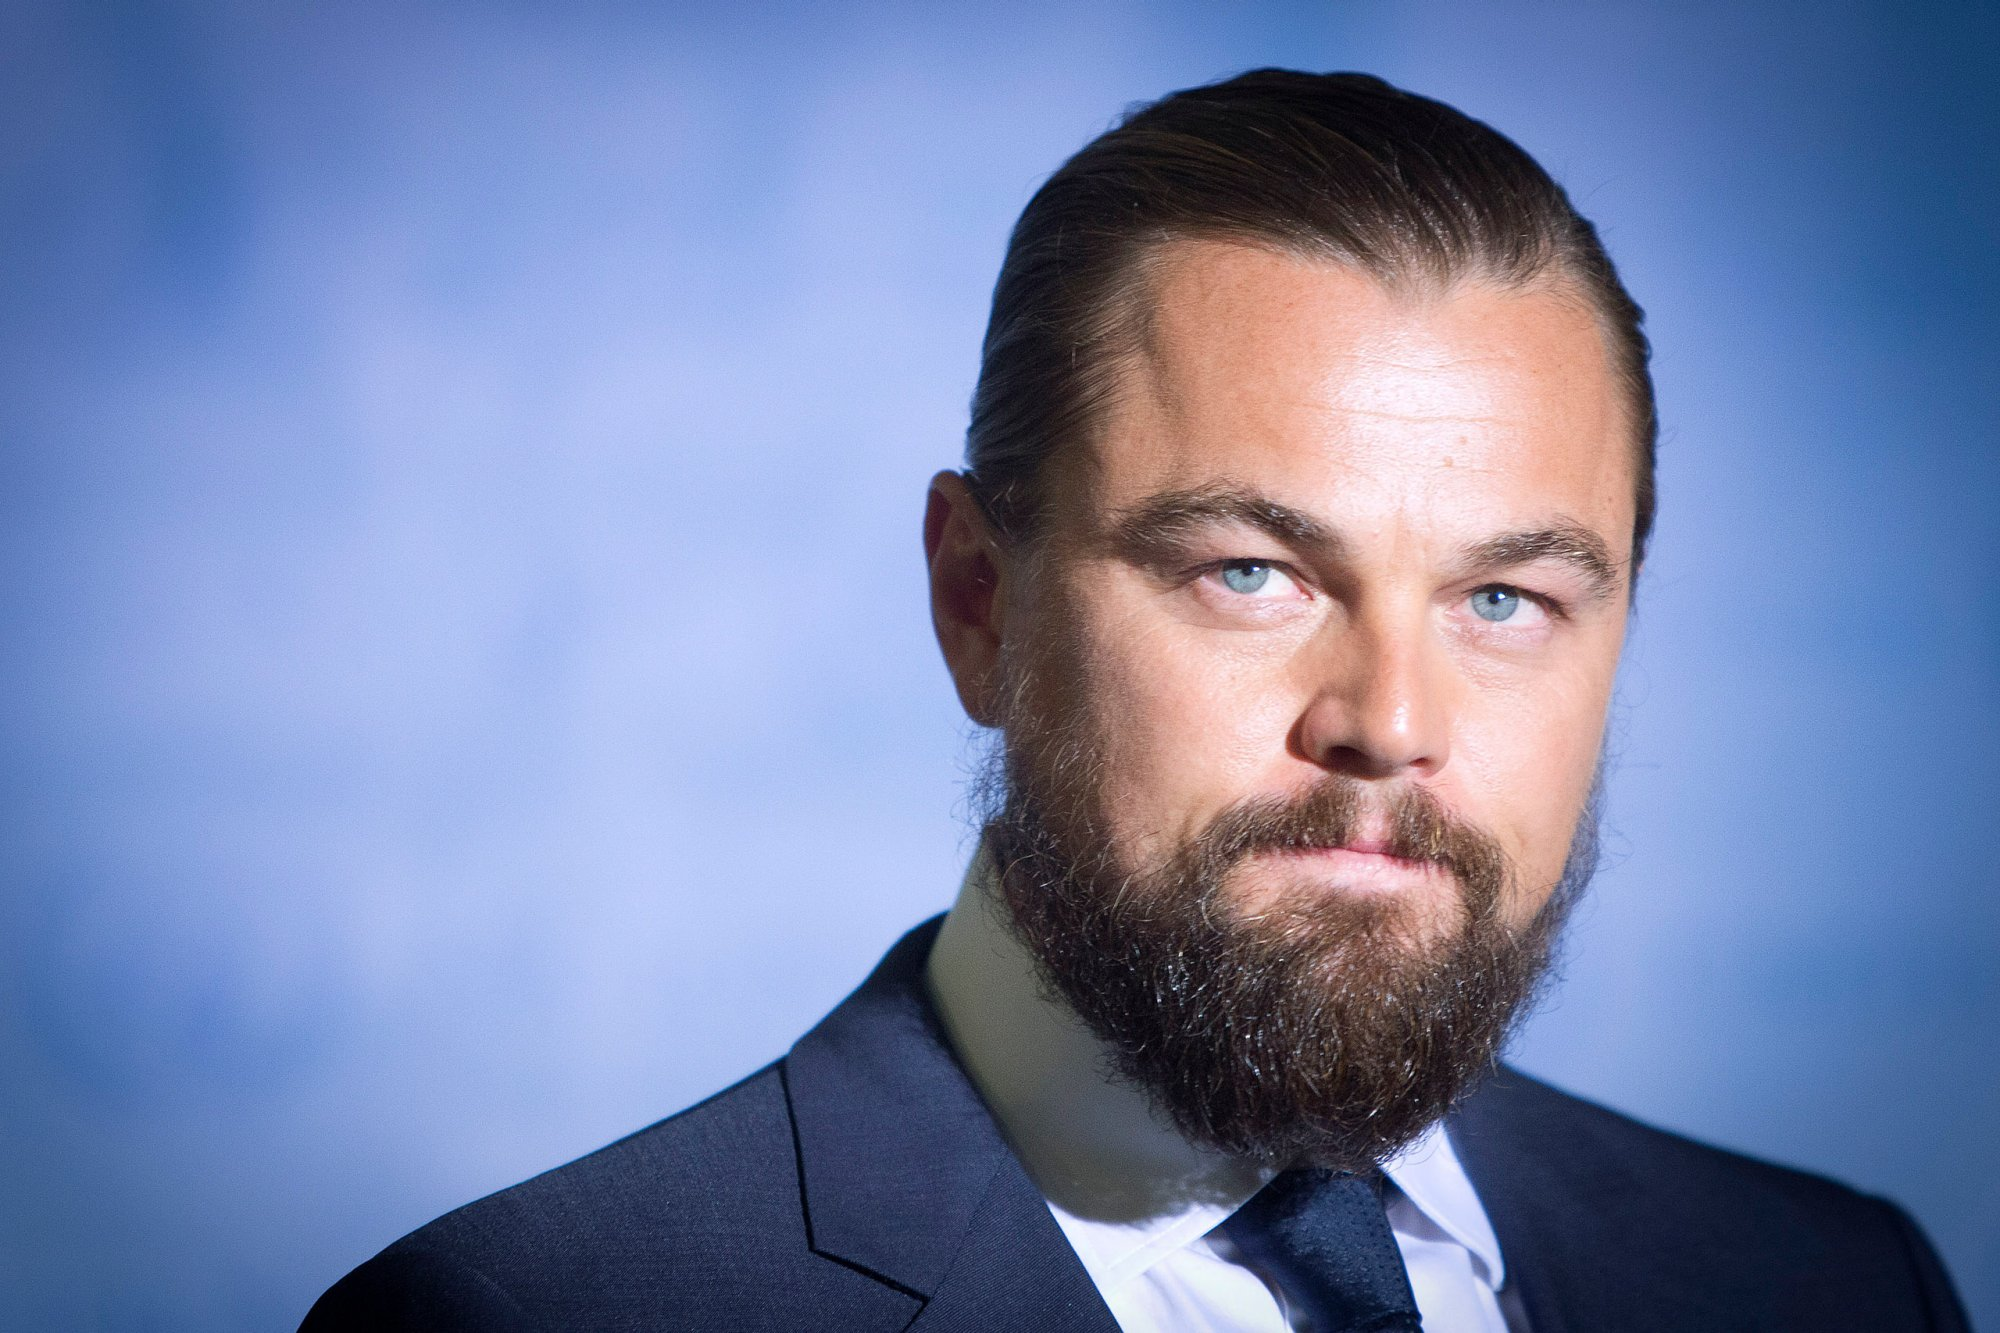 Leonardo DiCaprio Wallpapers High Resolution and Quality Download 2000x1333